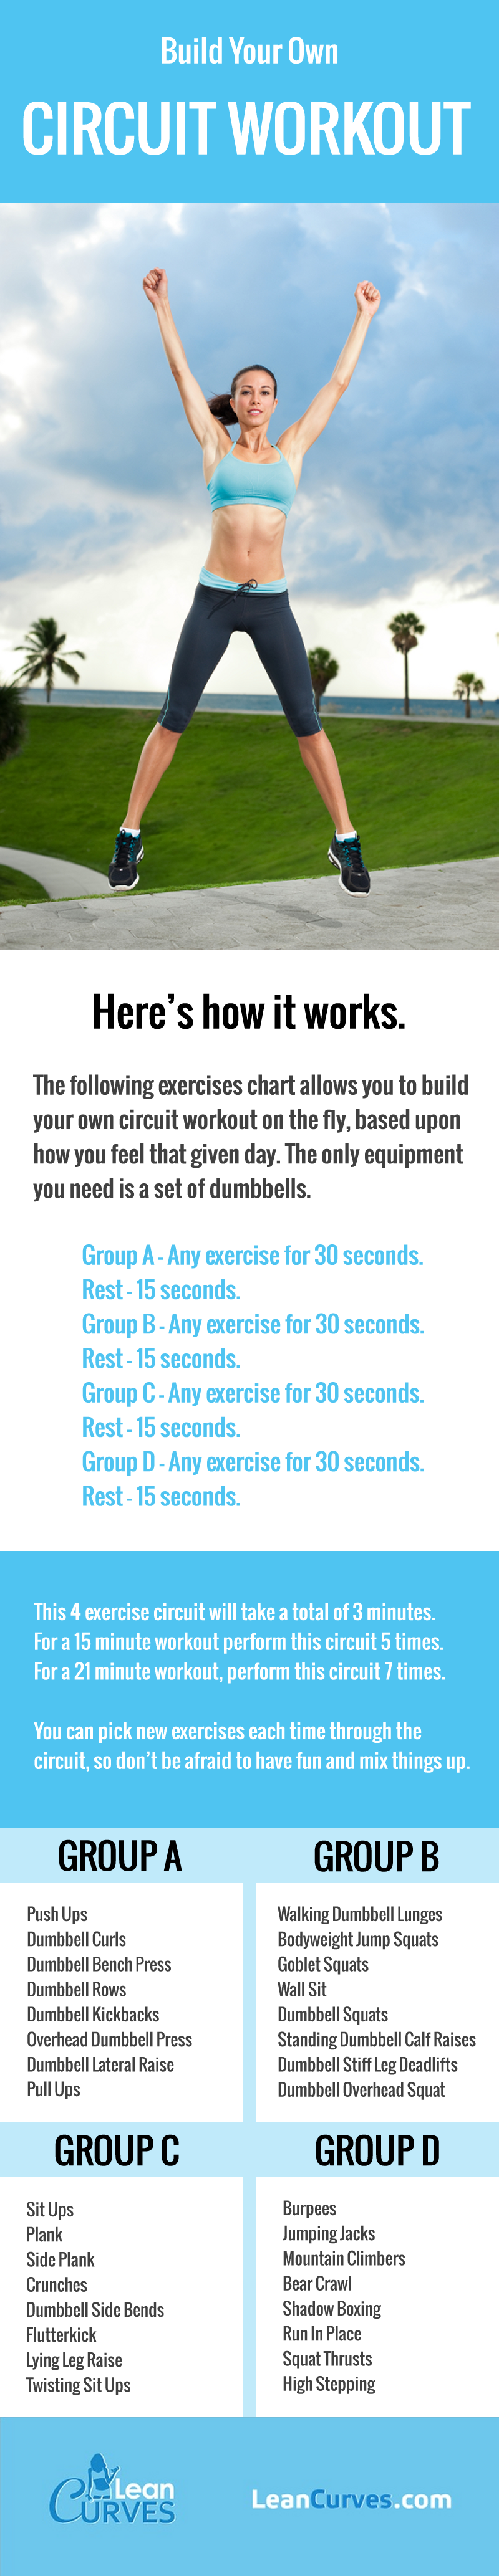 build your own workout circuit exercises chart workouts for women rh pinterest com